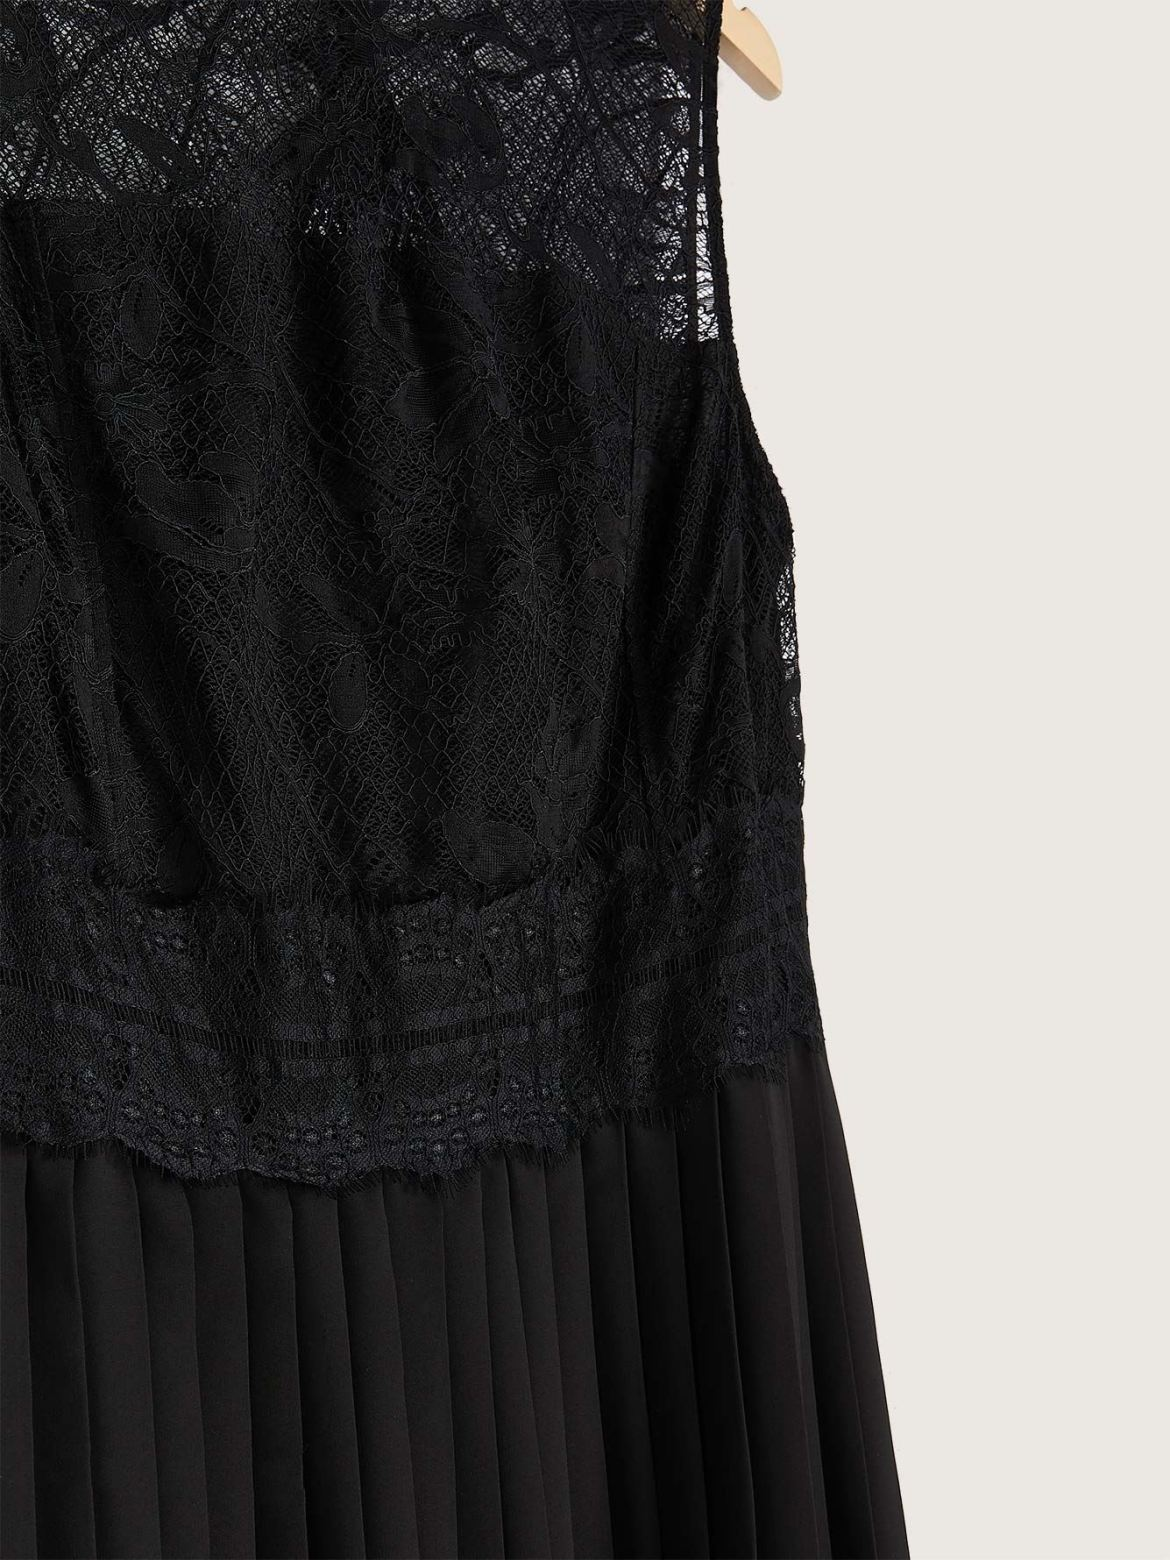 Solid Sleeveless Midi Dress with Lace Bodice - Addition Elle